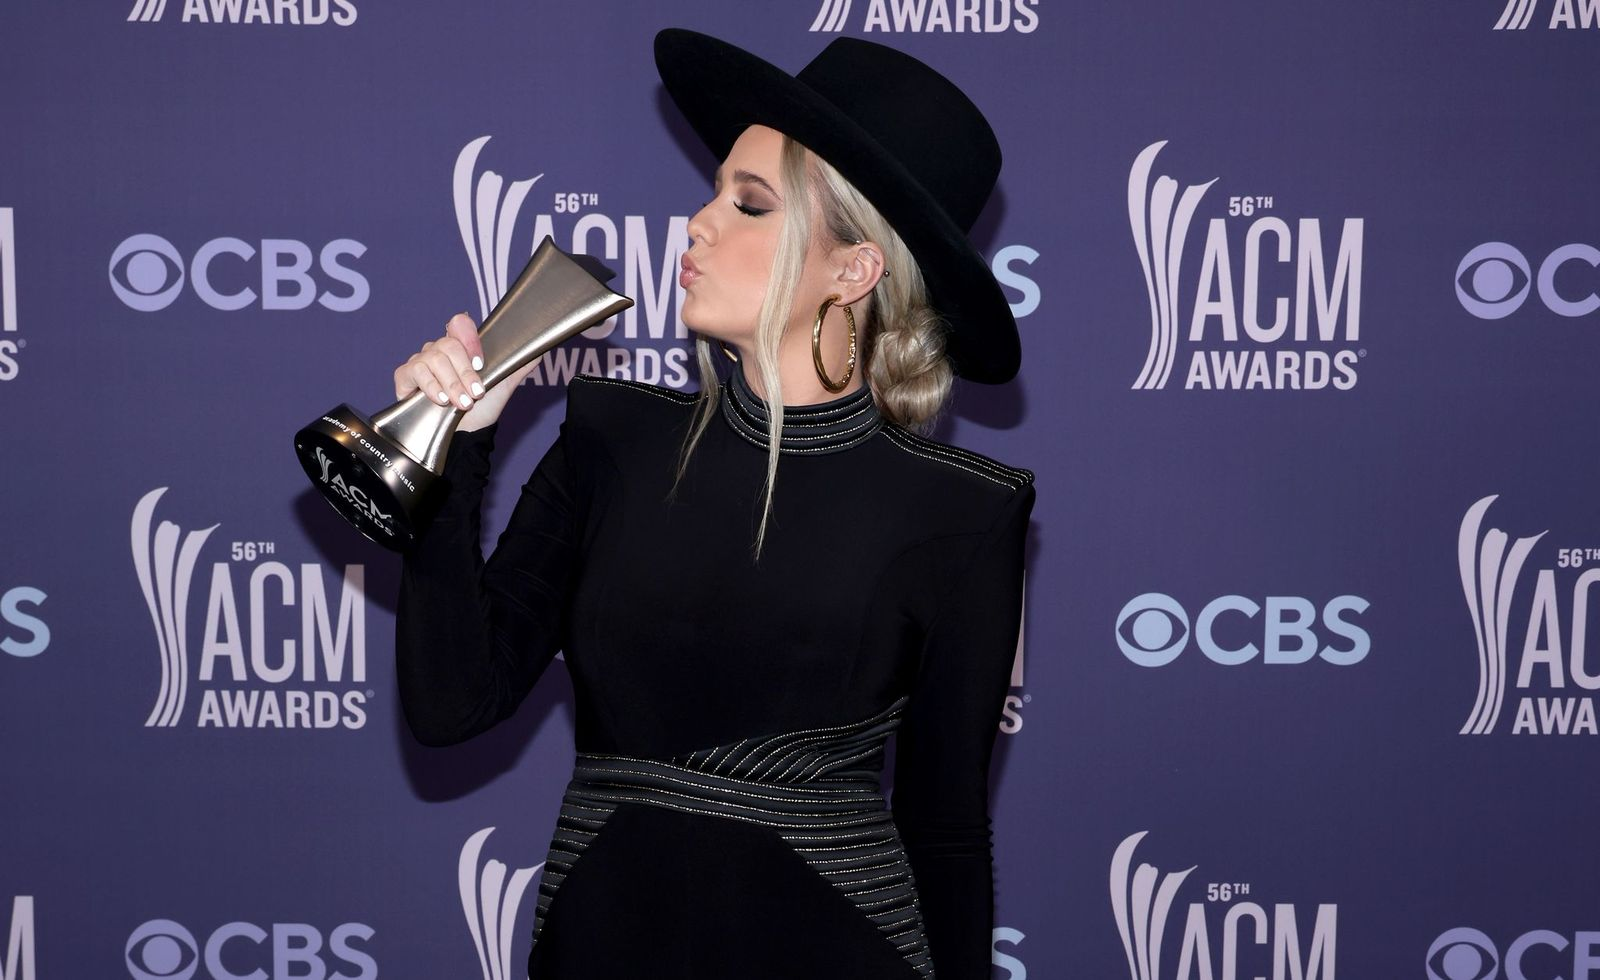 Gabby Barrett at the 56th Academy of Country Music Awards at the Grand Ole Opry on April 18, 2021 | Photo: Getty Images